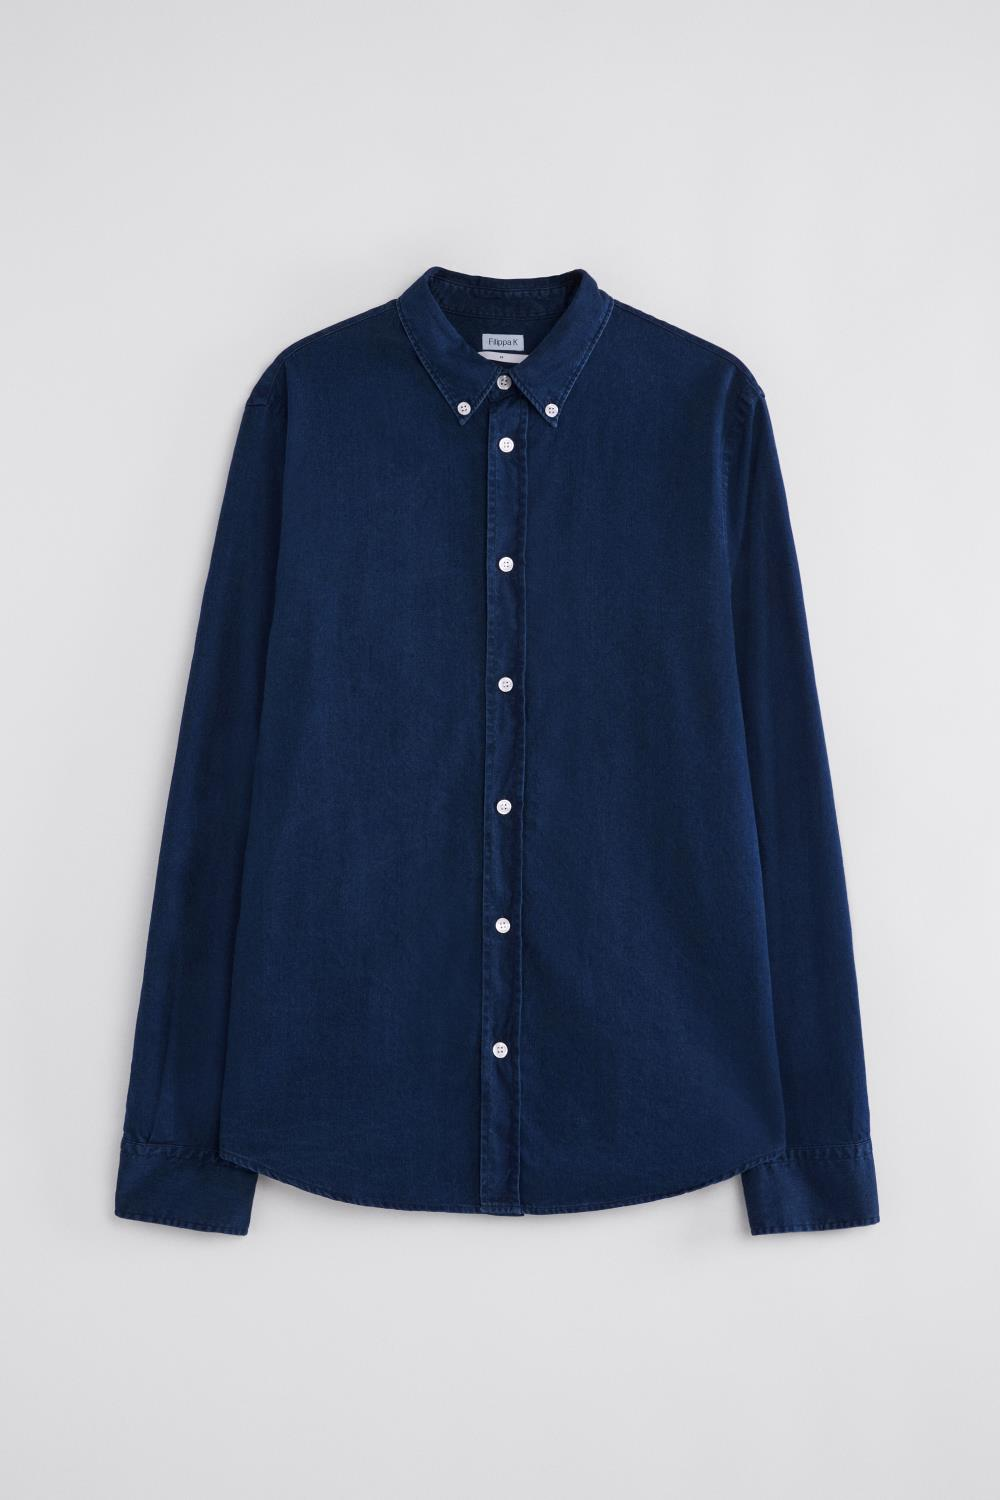 M. Lewis Chambray Shirt